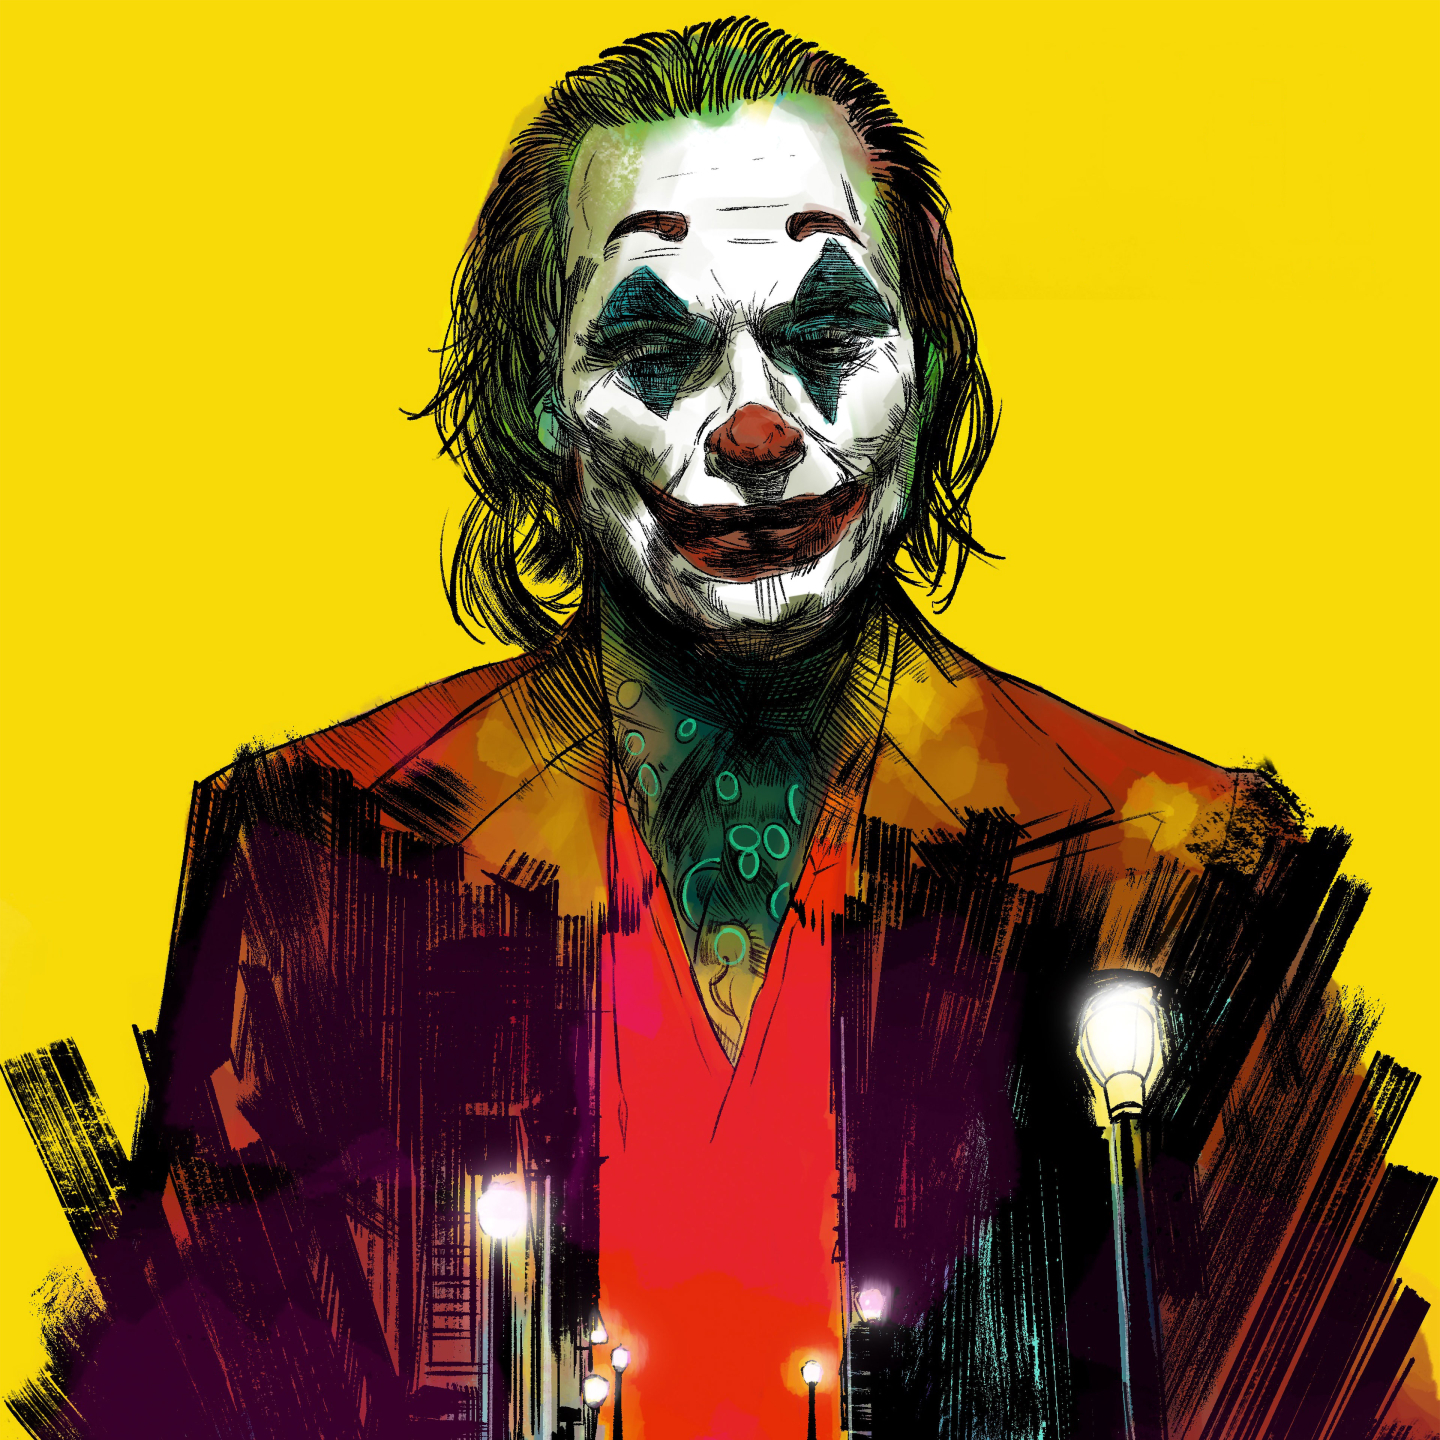 2019 joker movie 4k 1440x1440